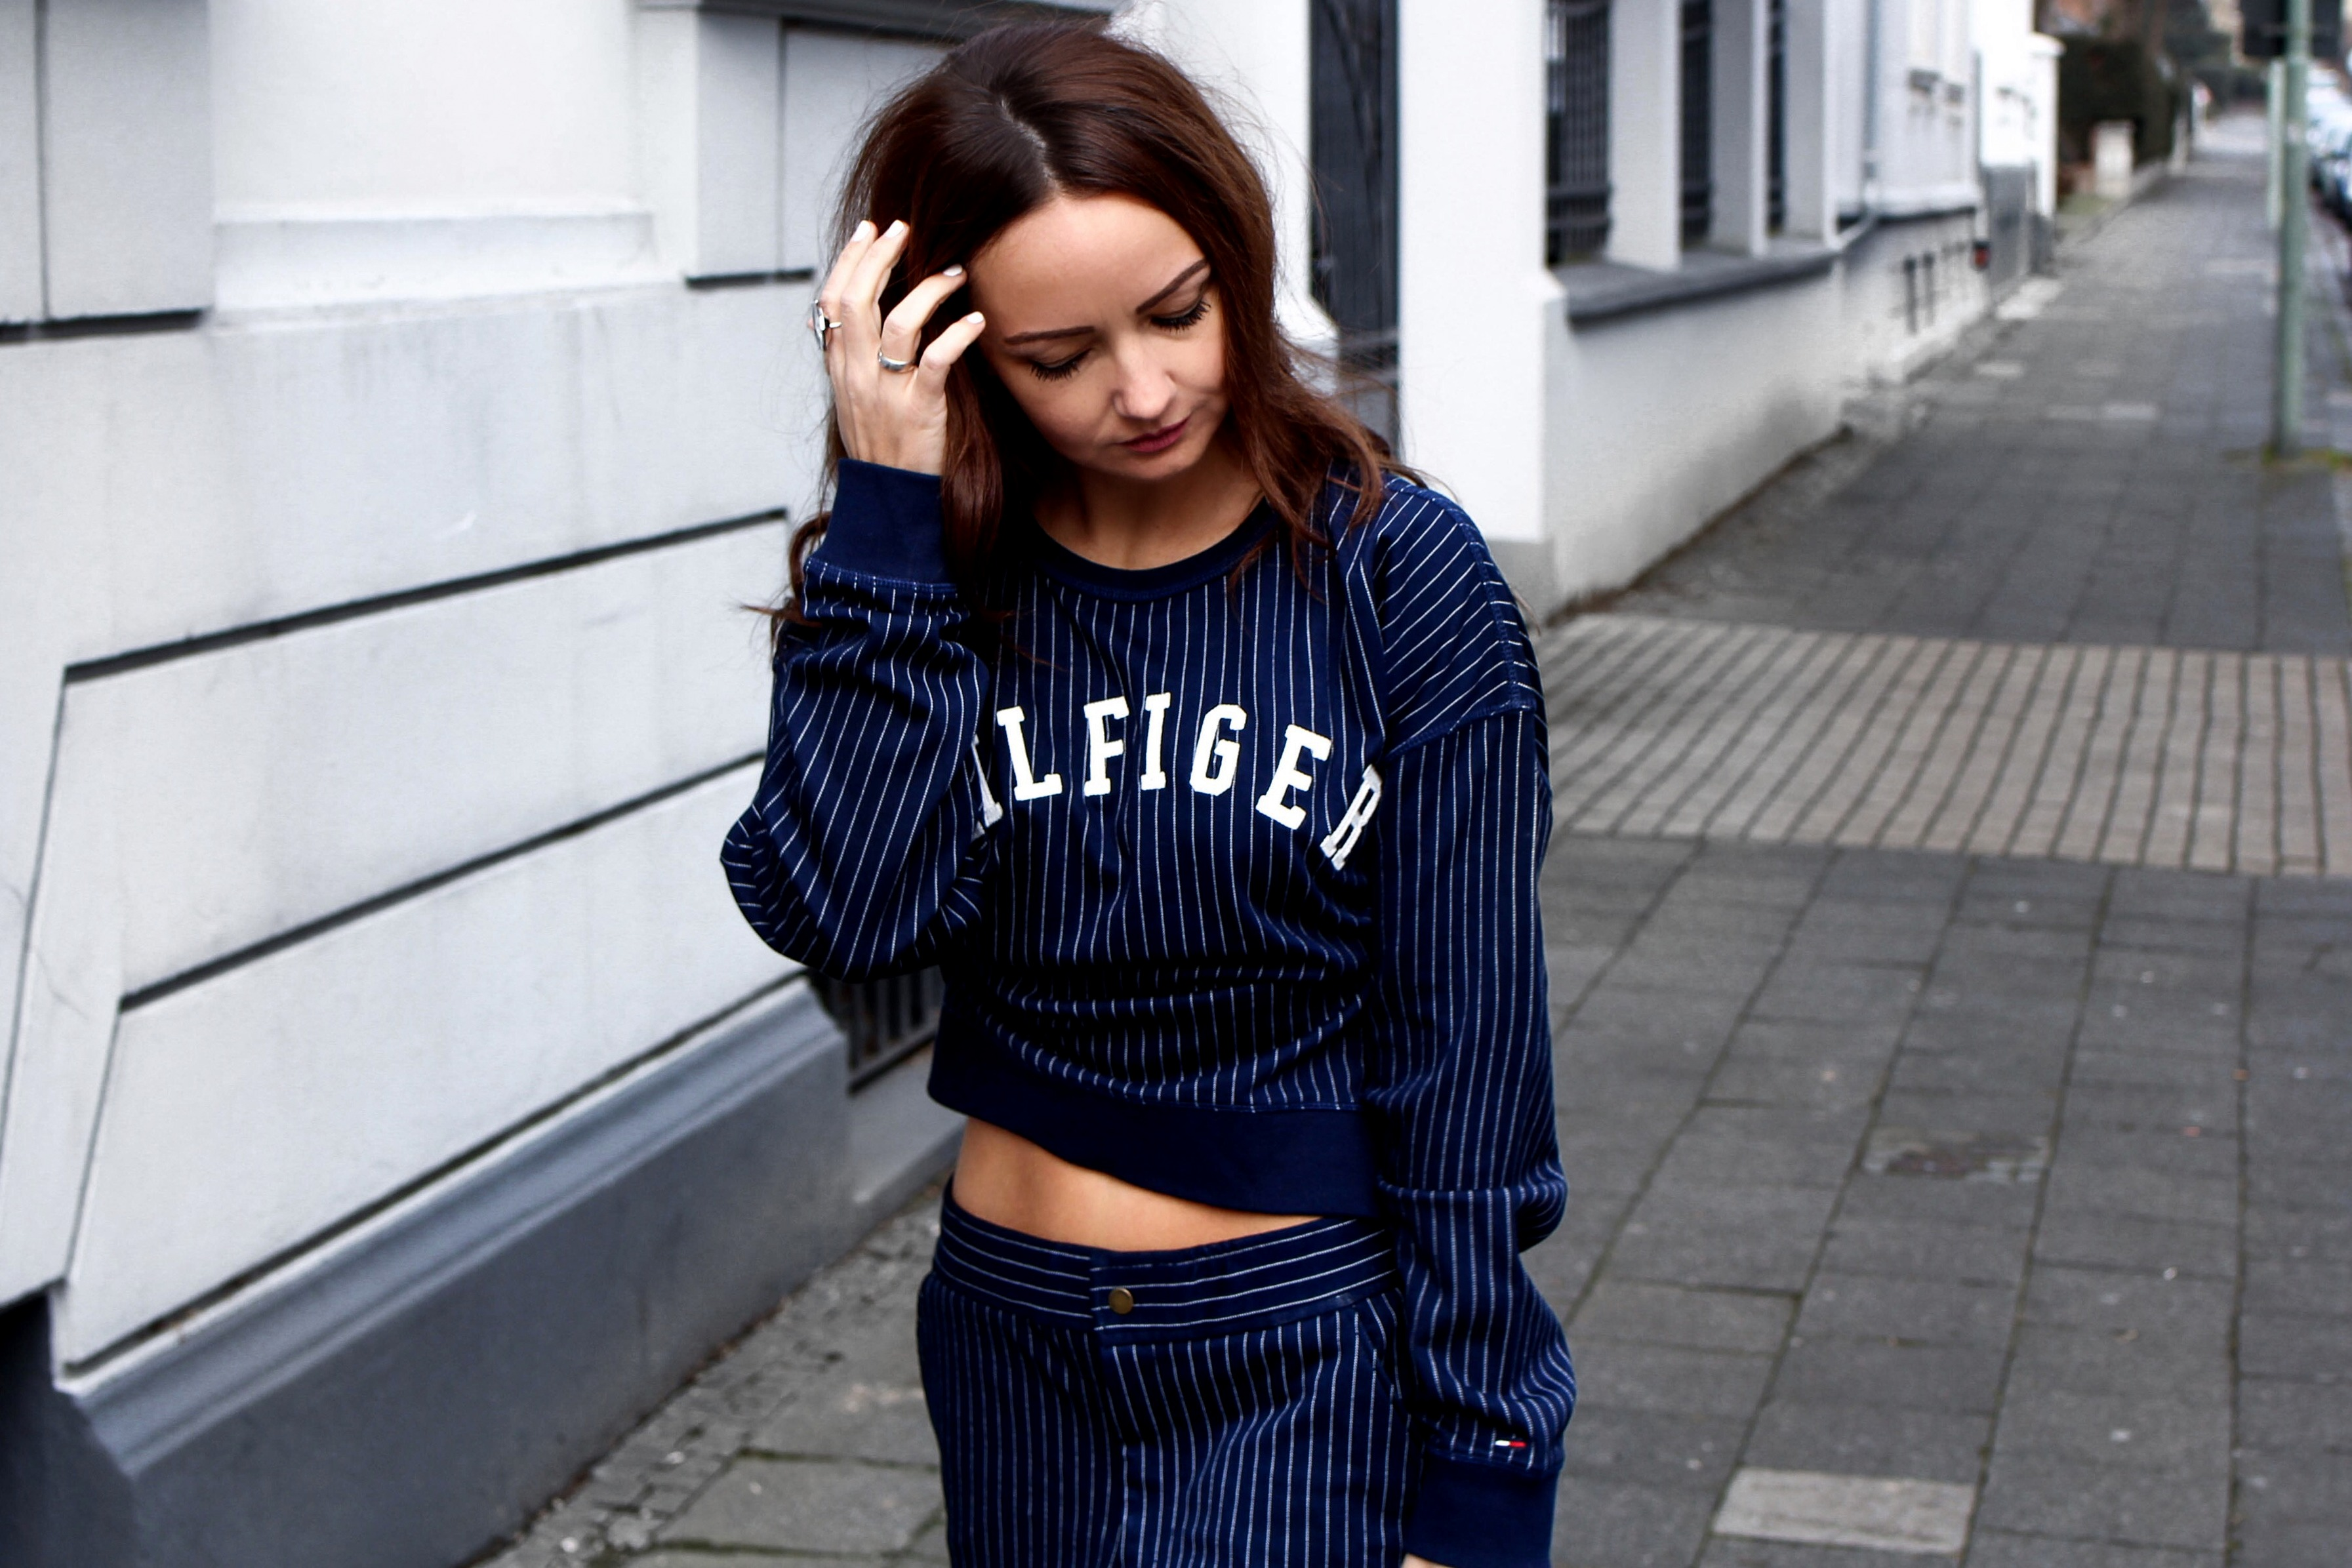 Fashioncircuz by Jenny tommy-hilfiger-blogger-look OUTFIT | HILFIGER JOGGINGHOSE & STATEMENT PULLI MEETS HIGH HEELS